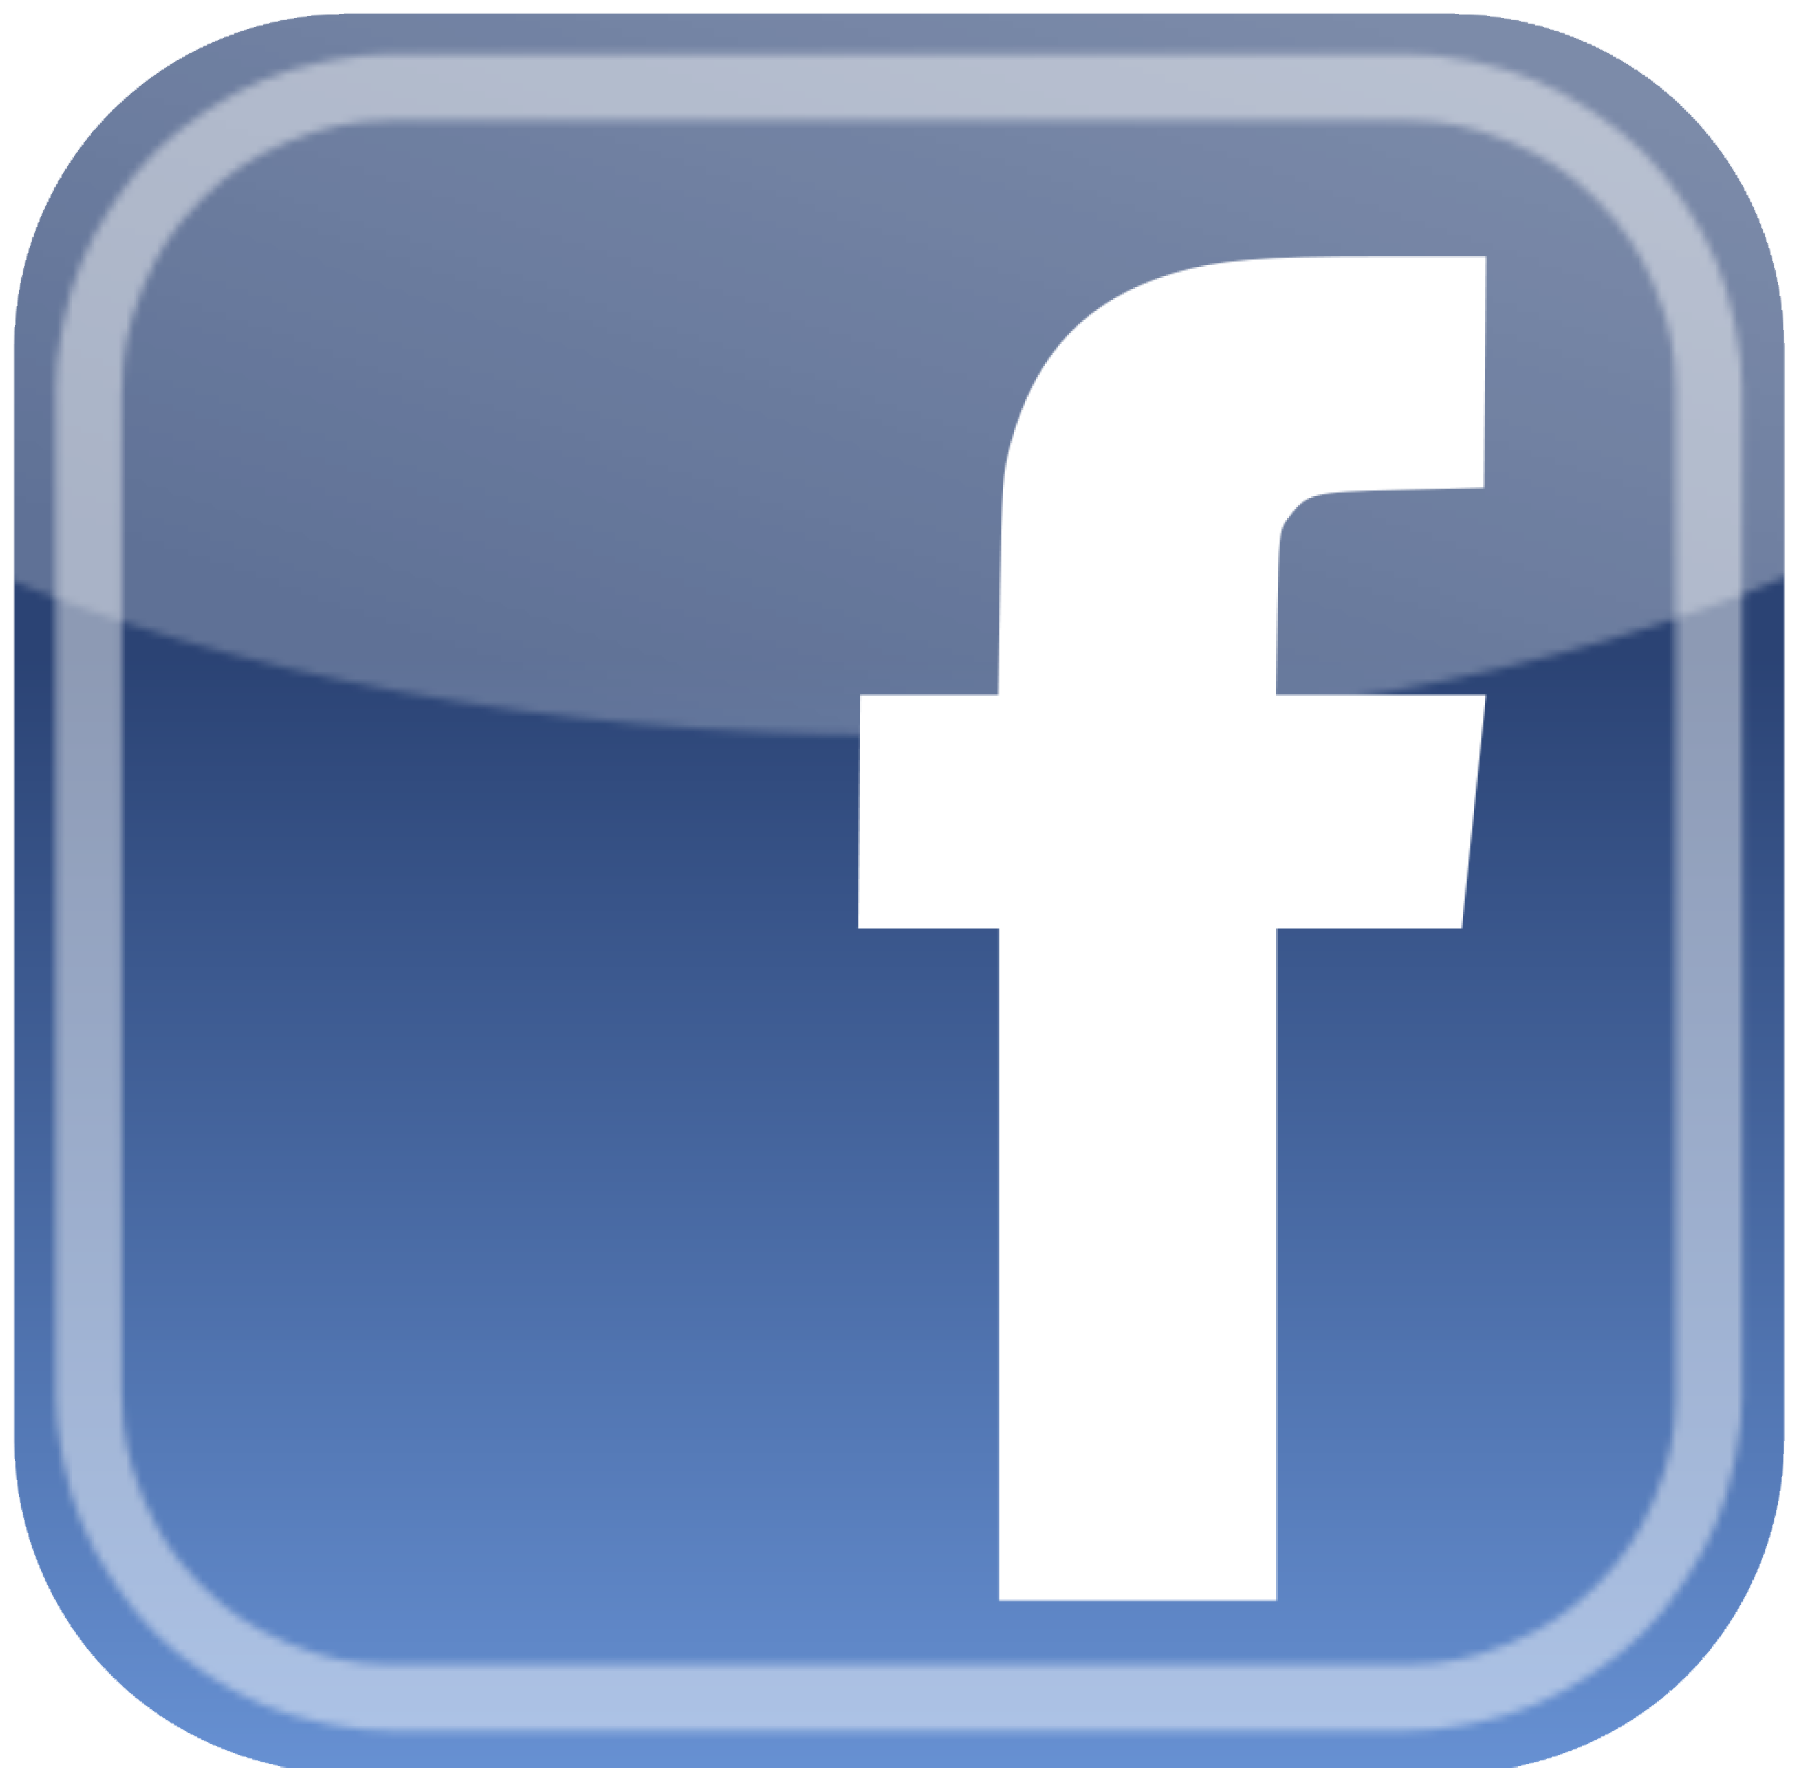 Like and Follow us on Facebook @rvcityalberta